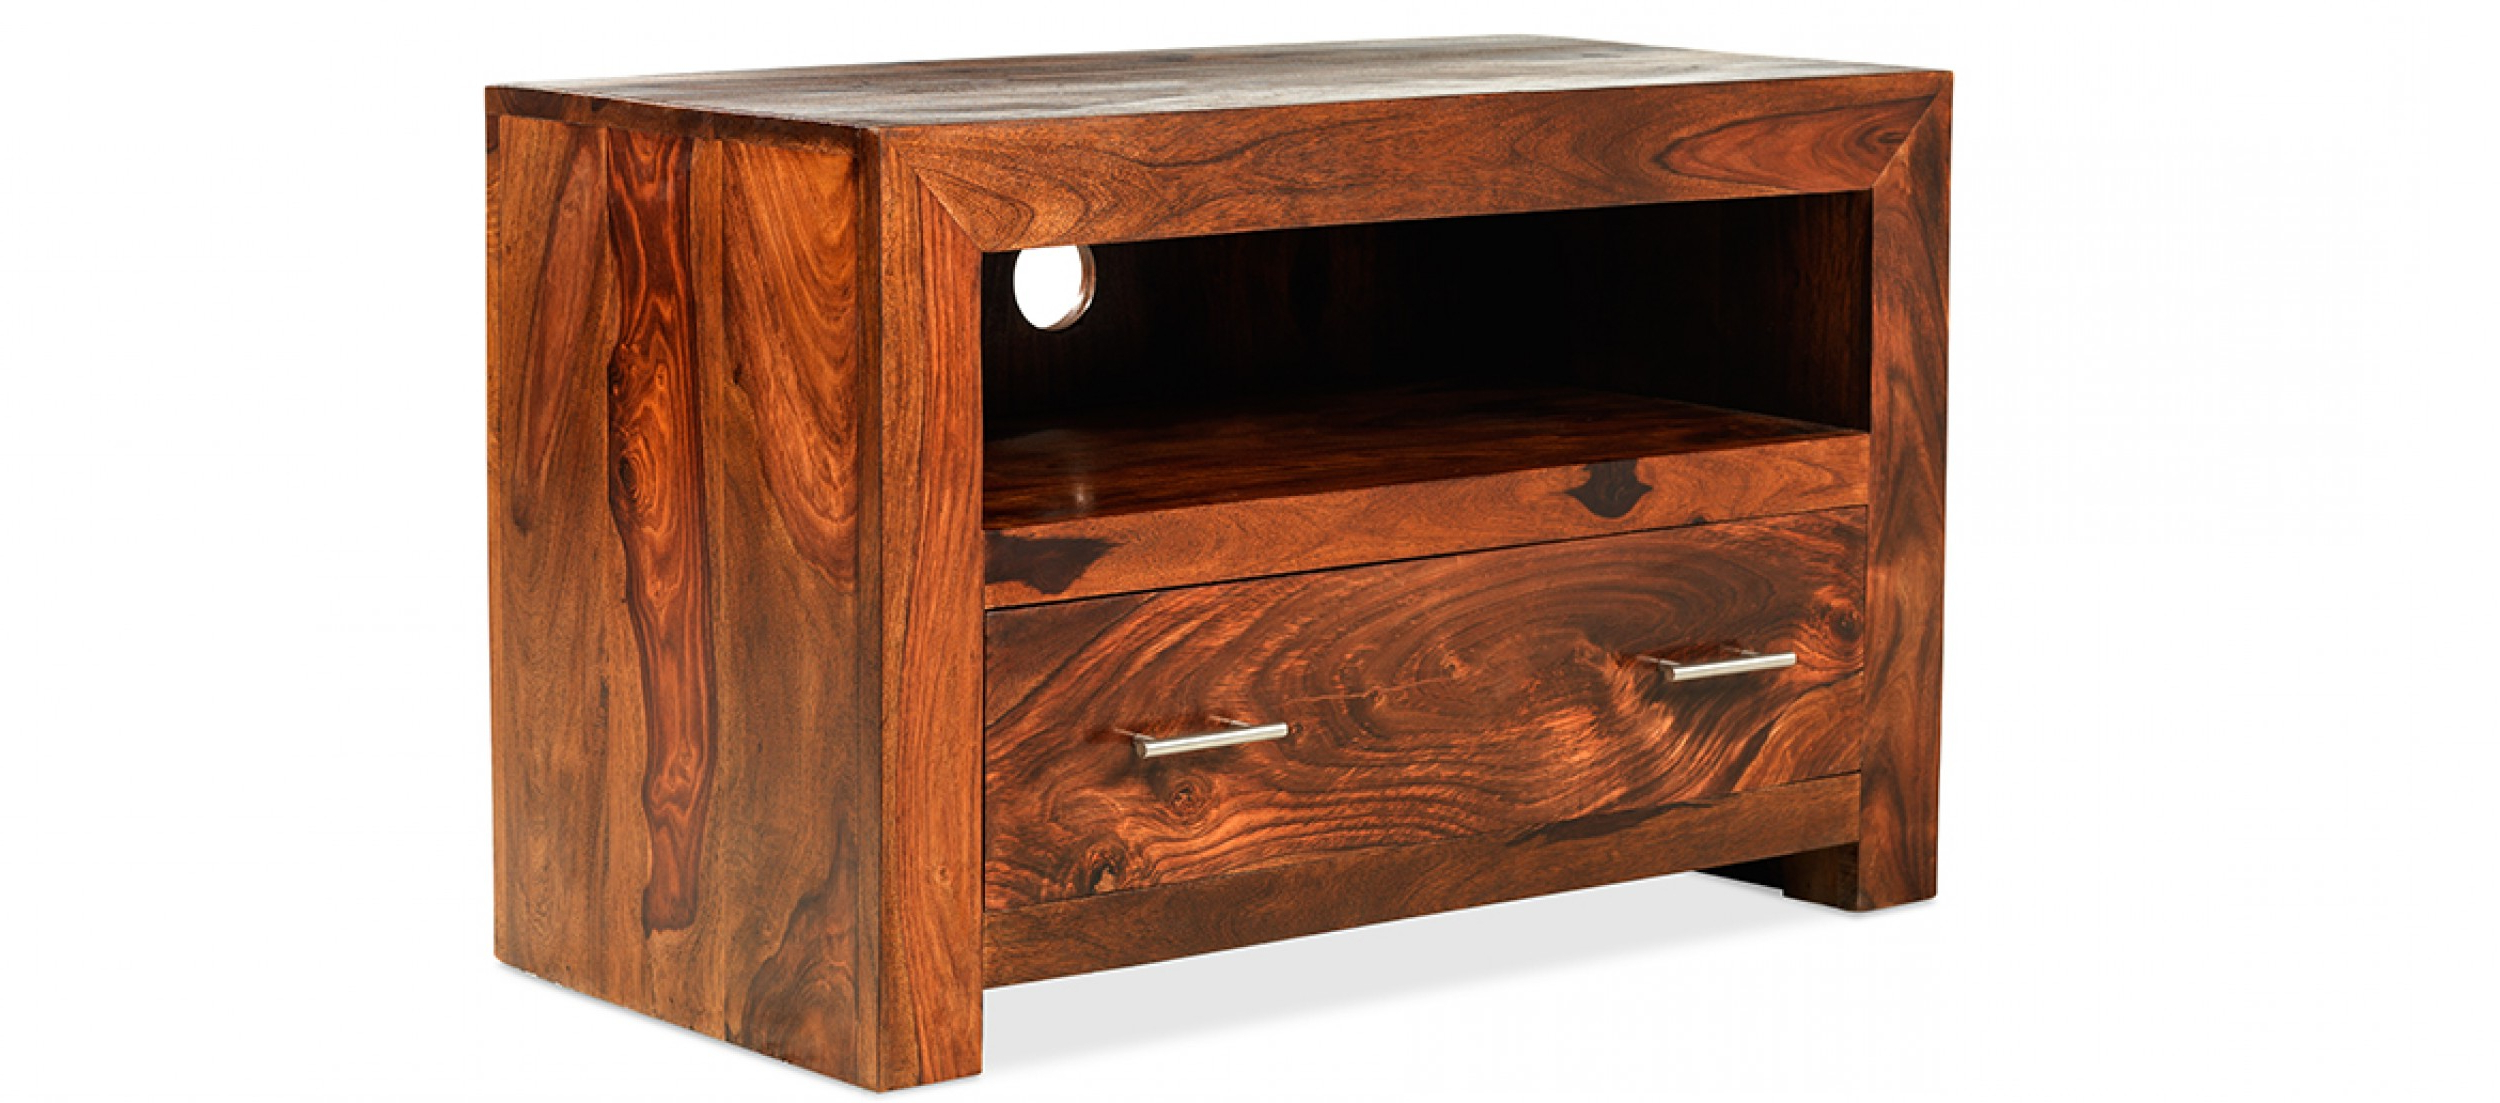 Most Popular Cube Sheesham Square Tv Stand (View 13 of 20)